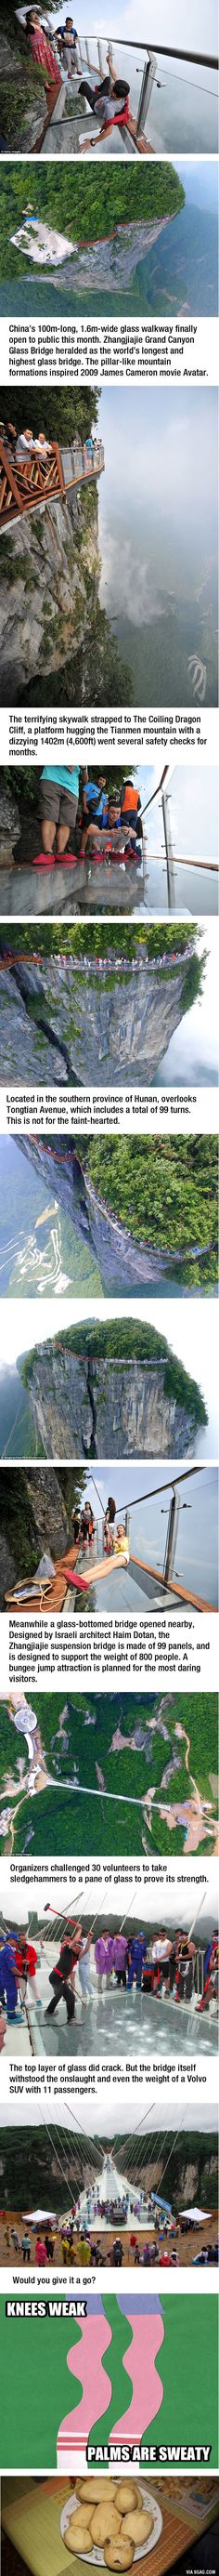 Terrifying 1402m(4,600ft) Glass Skywalk Opens In China, Knees Weak, Palms Are Sweaty - 9GAG